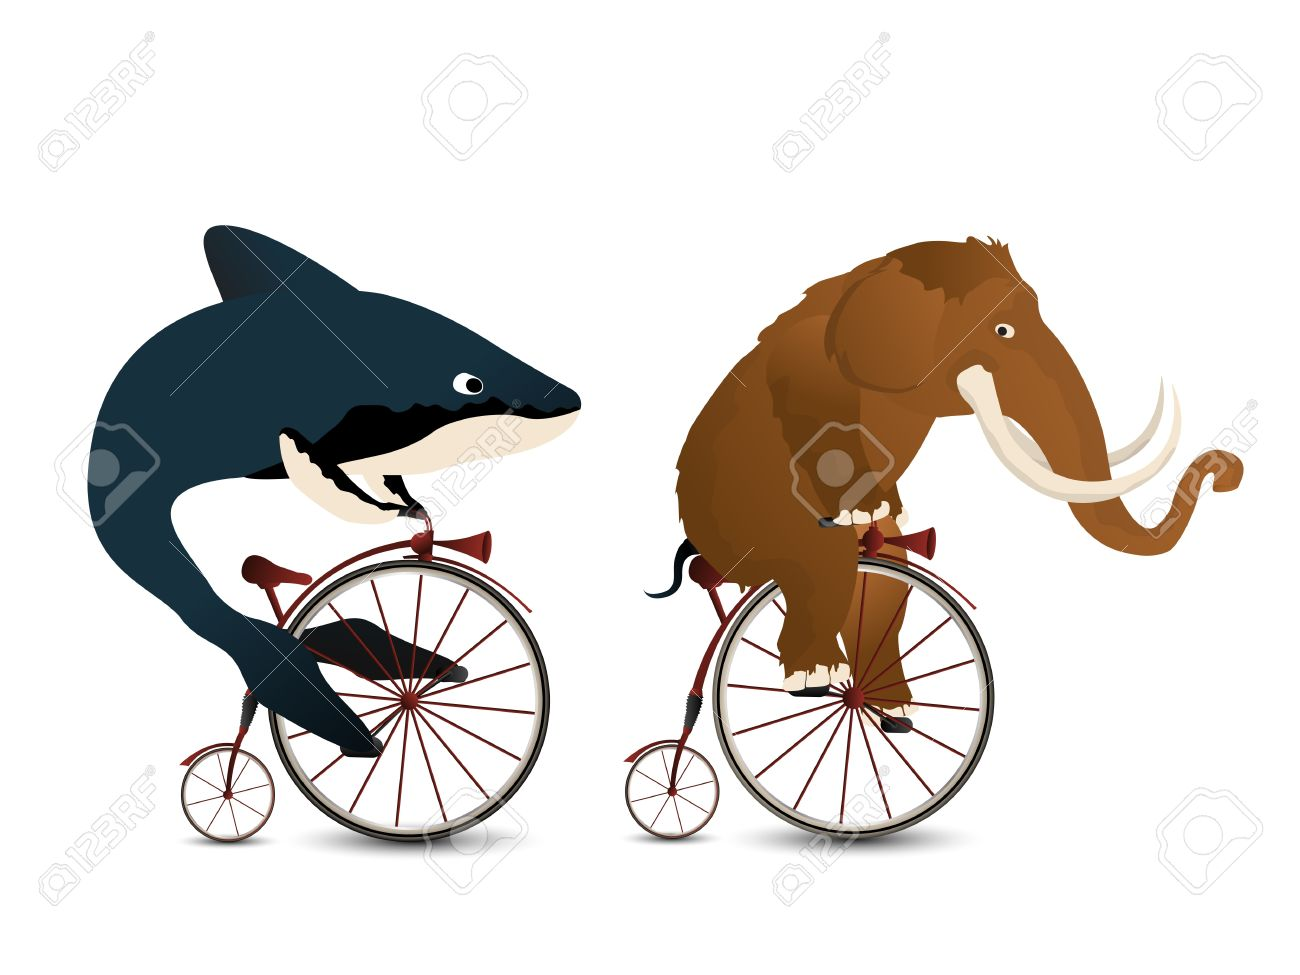 1300x975 Cartoon Style Drawing Of A Mammoth And A Whale Racing On Bicycles